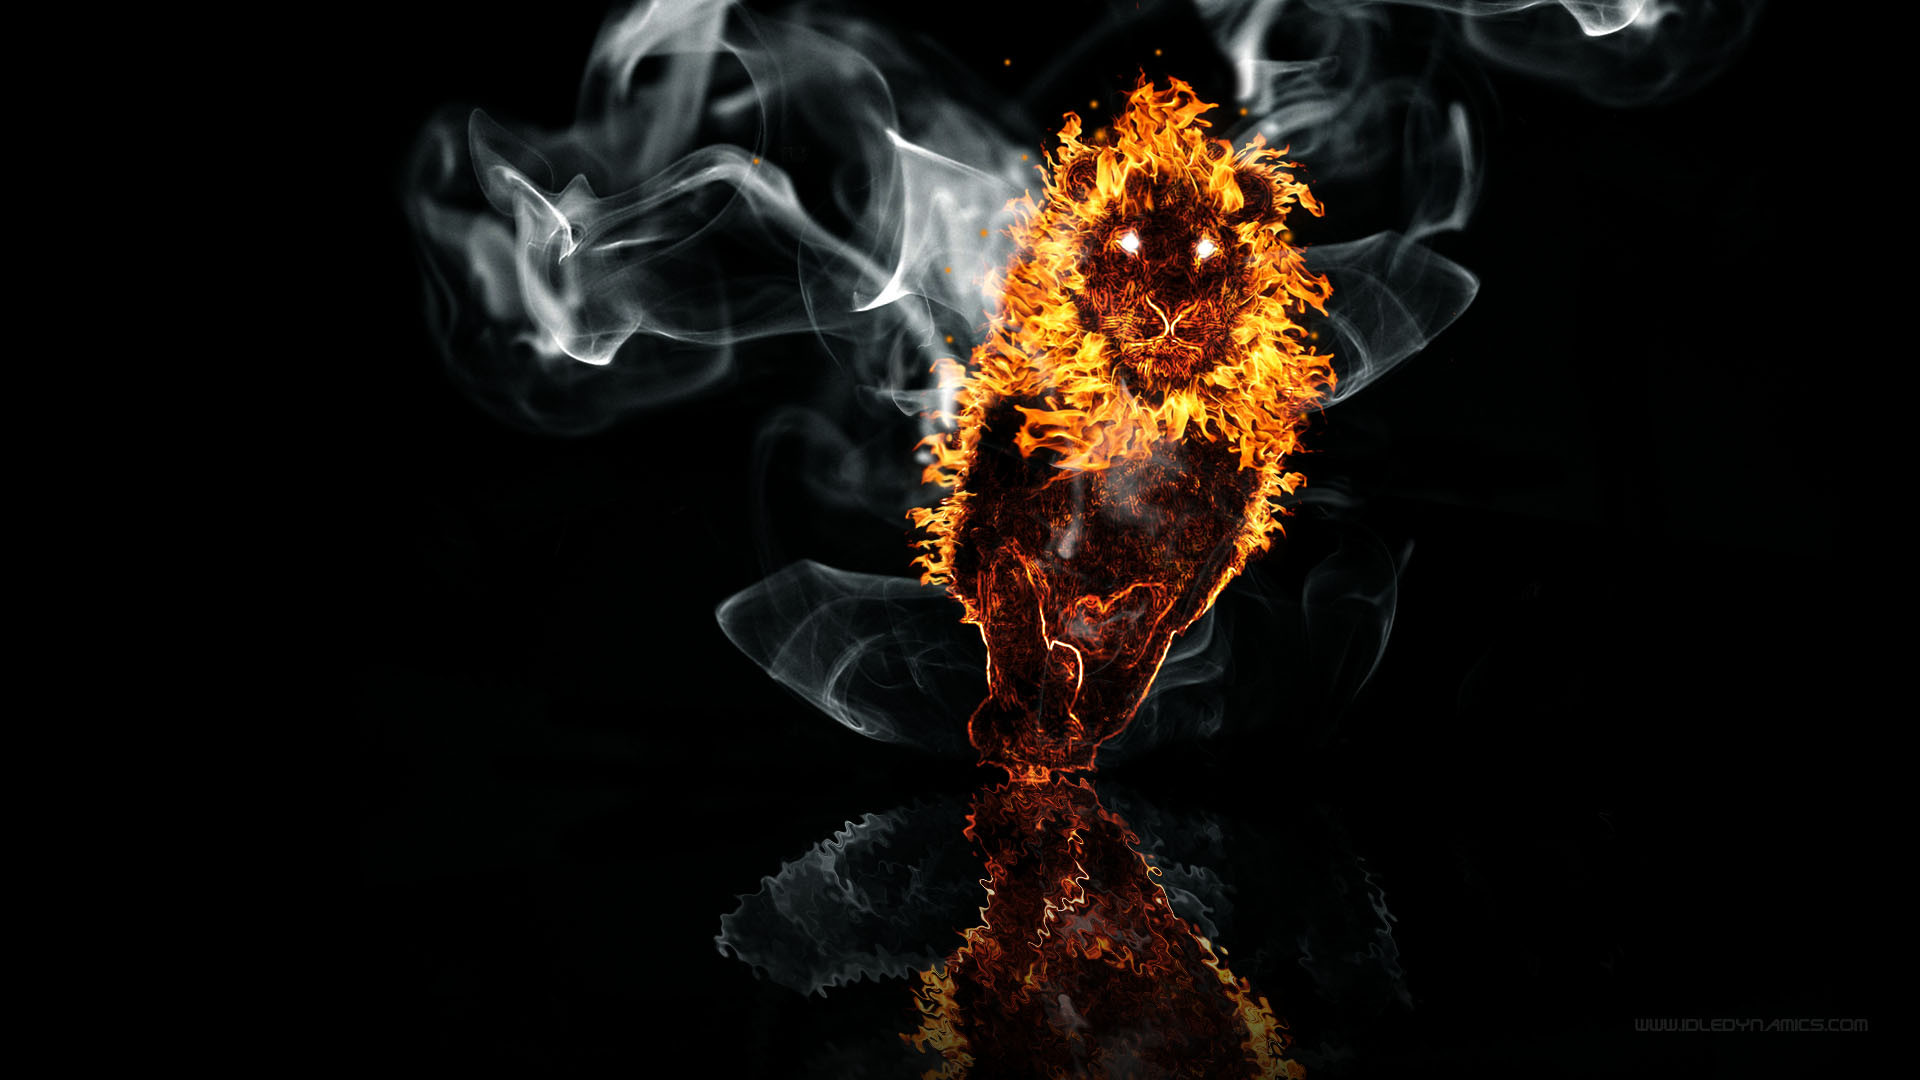 Lion Fire On The Water Hd Wallpaper Background Image 1920x1080